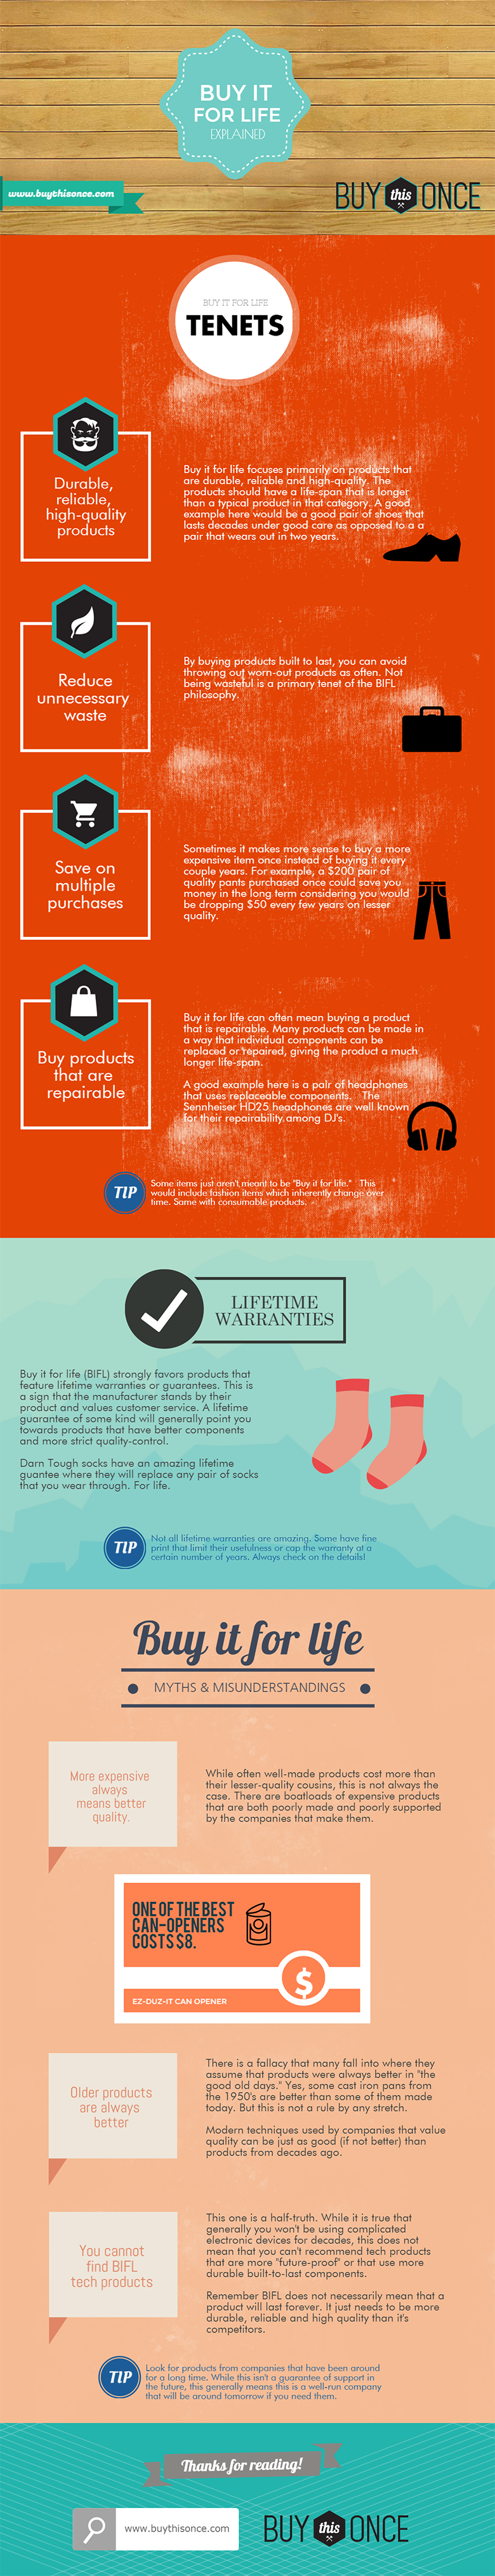 Infographic: Buy it for life explained (BIFL)